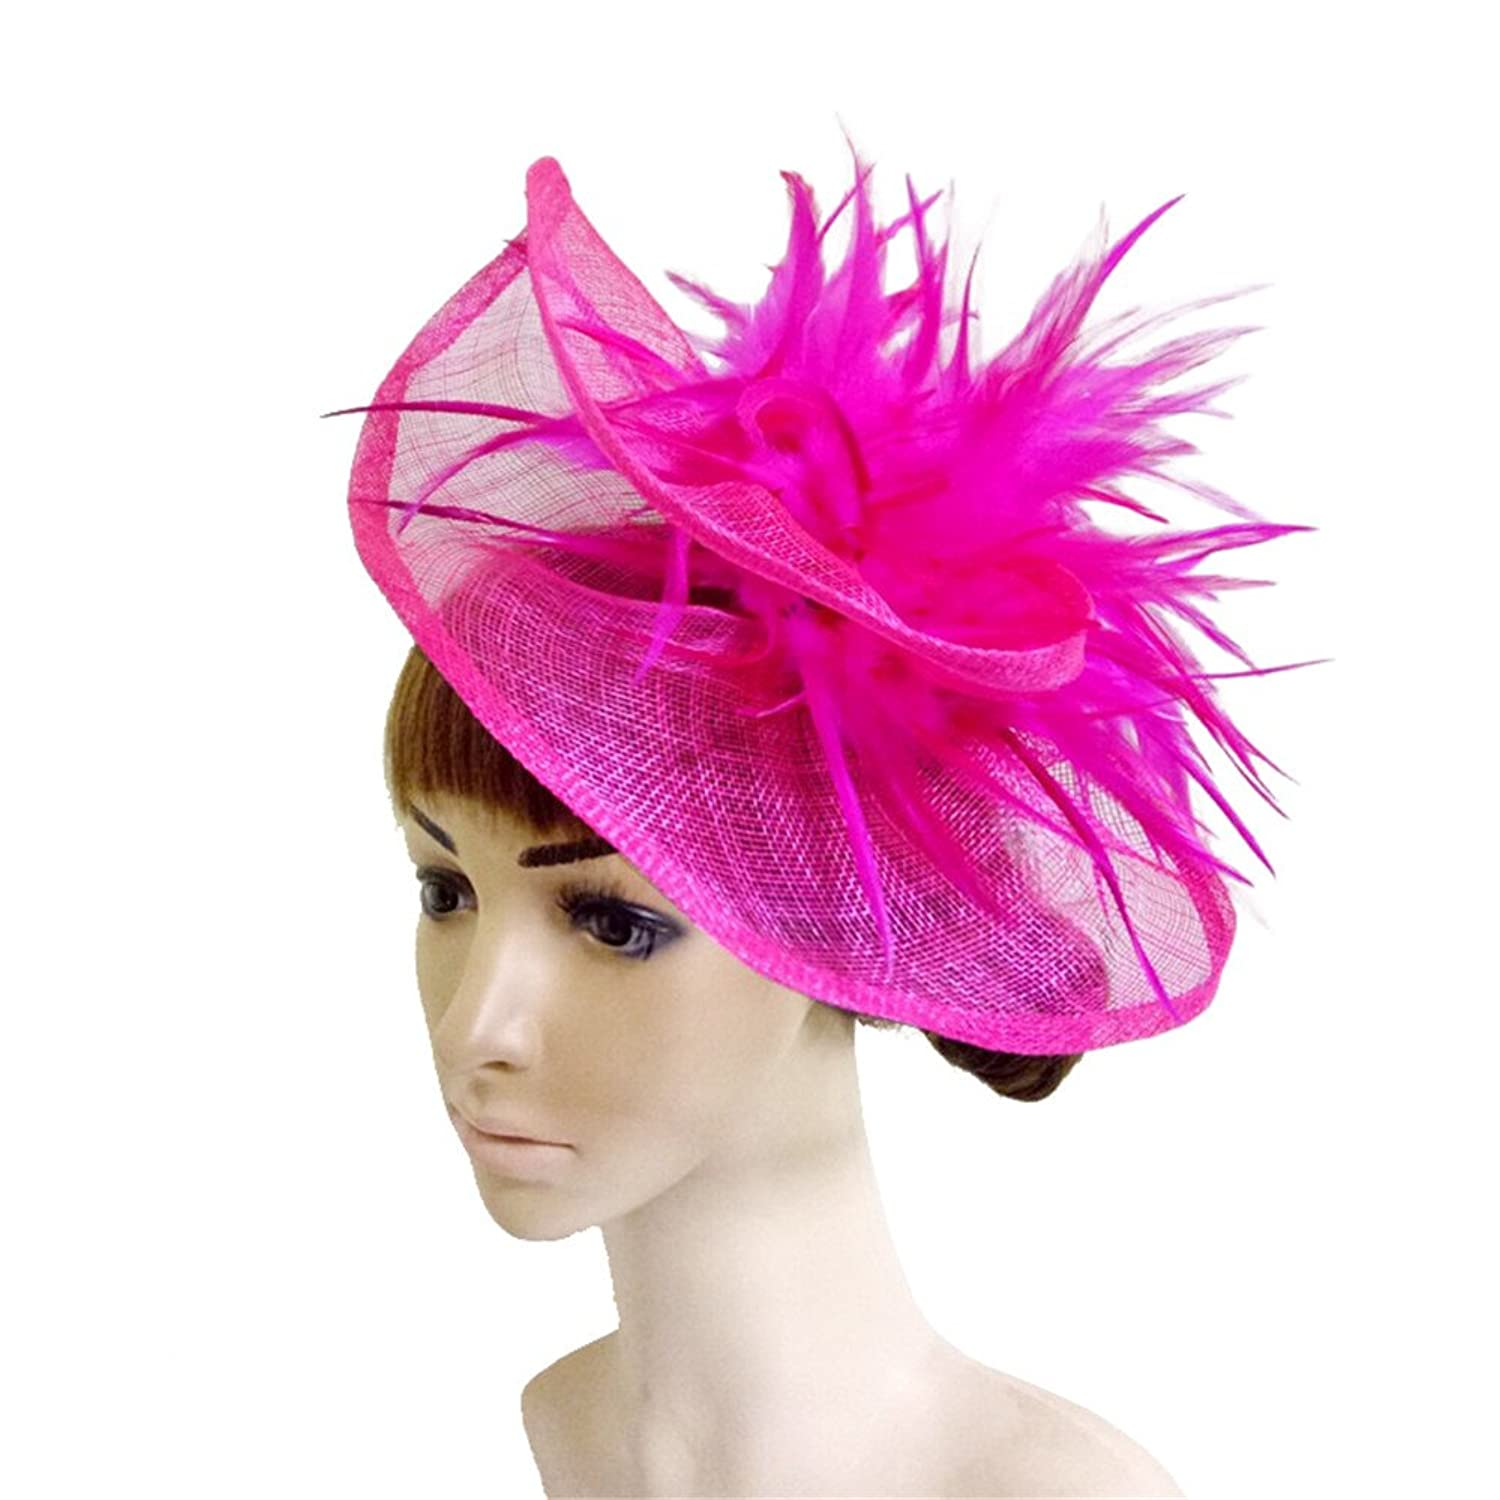 YONQUIL Wedding Sinamay Millinery Headwear Party Headpiece Wedding Hats SYF233